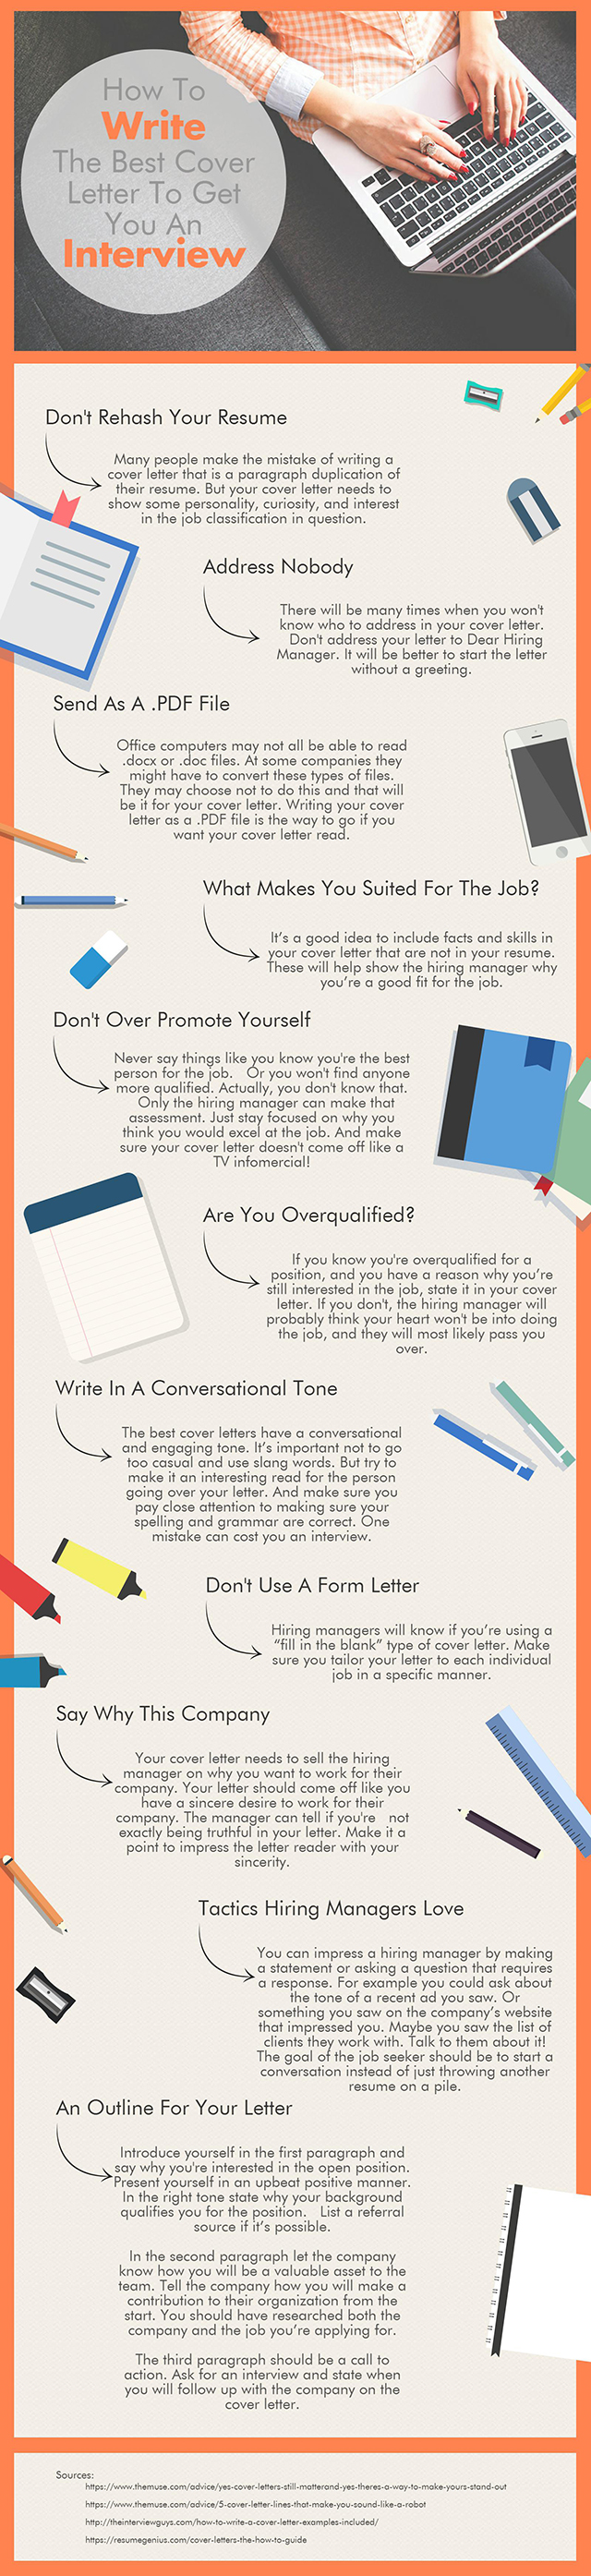 How To Write The Best Cover Letter To Get You An Interview - Infographic1